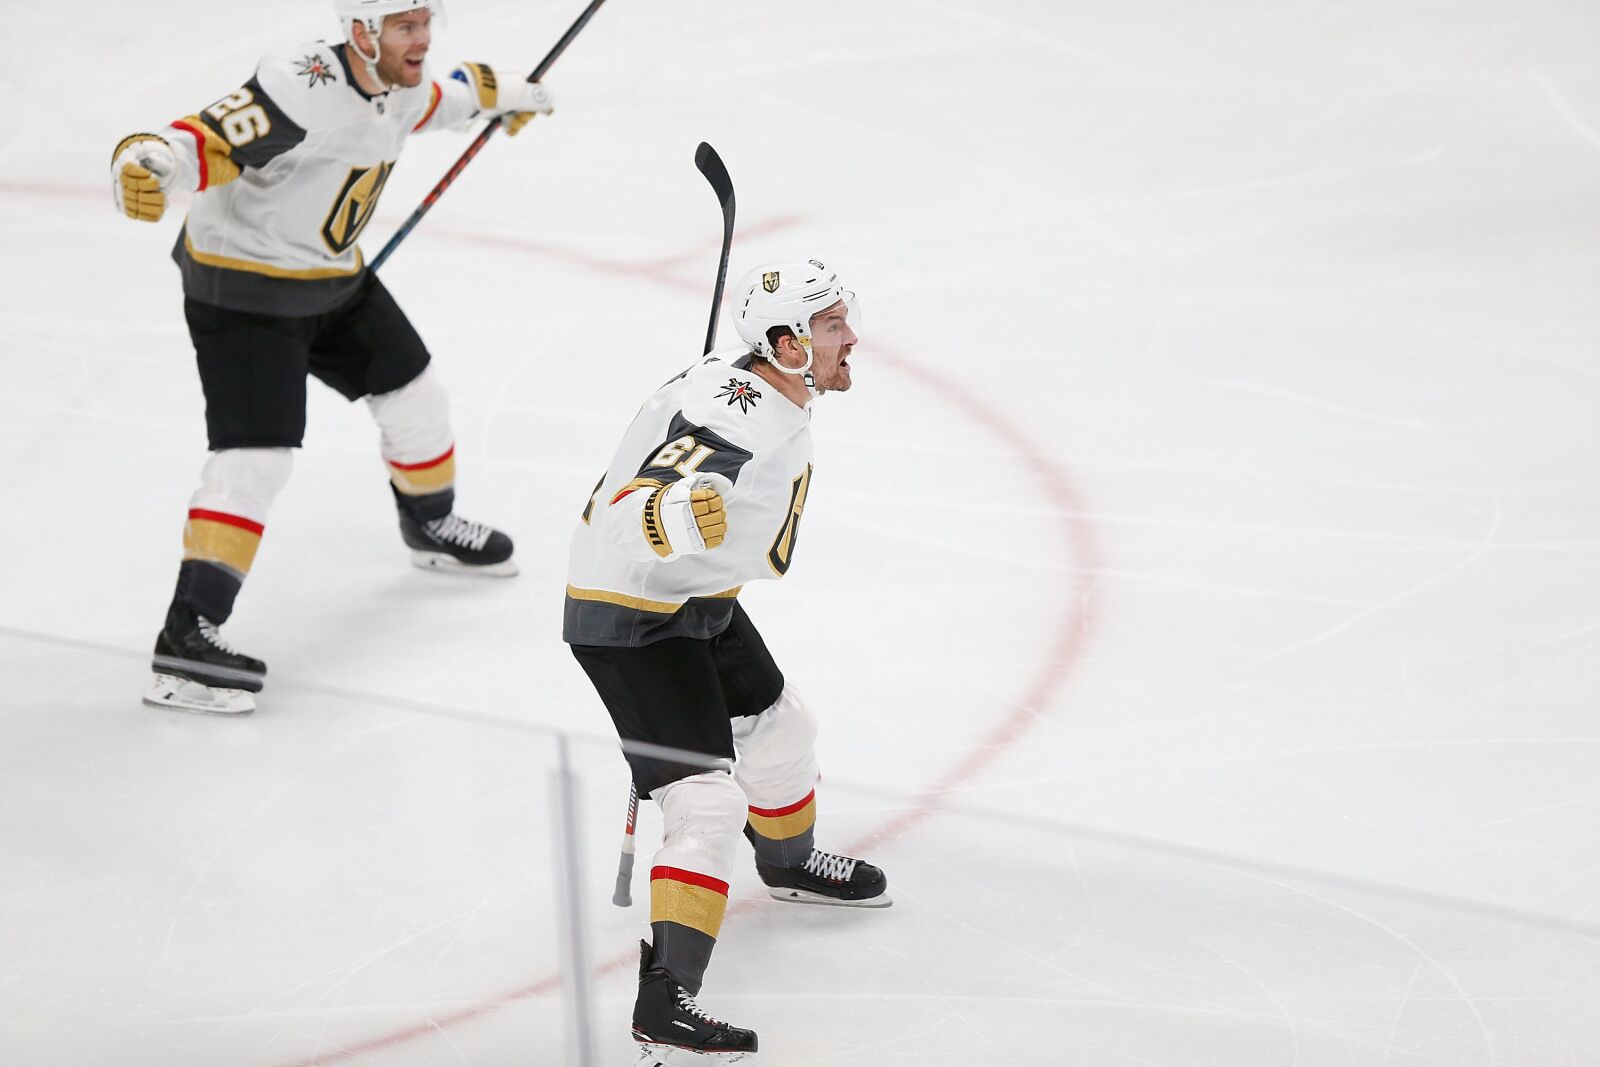 Vegas Golden Knights: Mark Stone could be VGK's own Patrice Bergeron